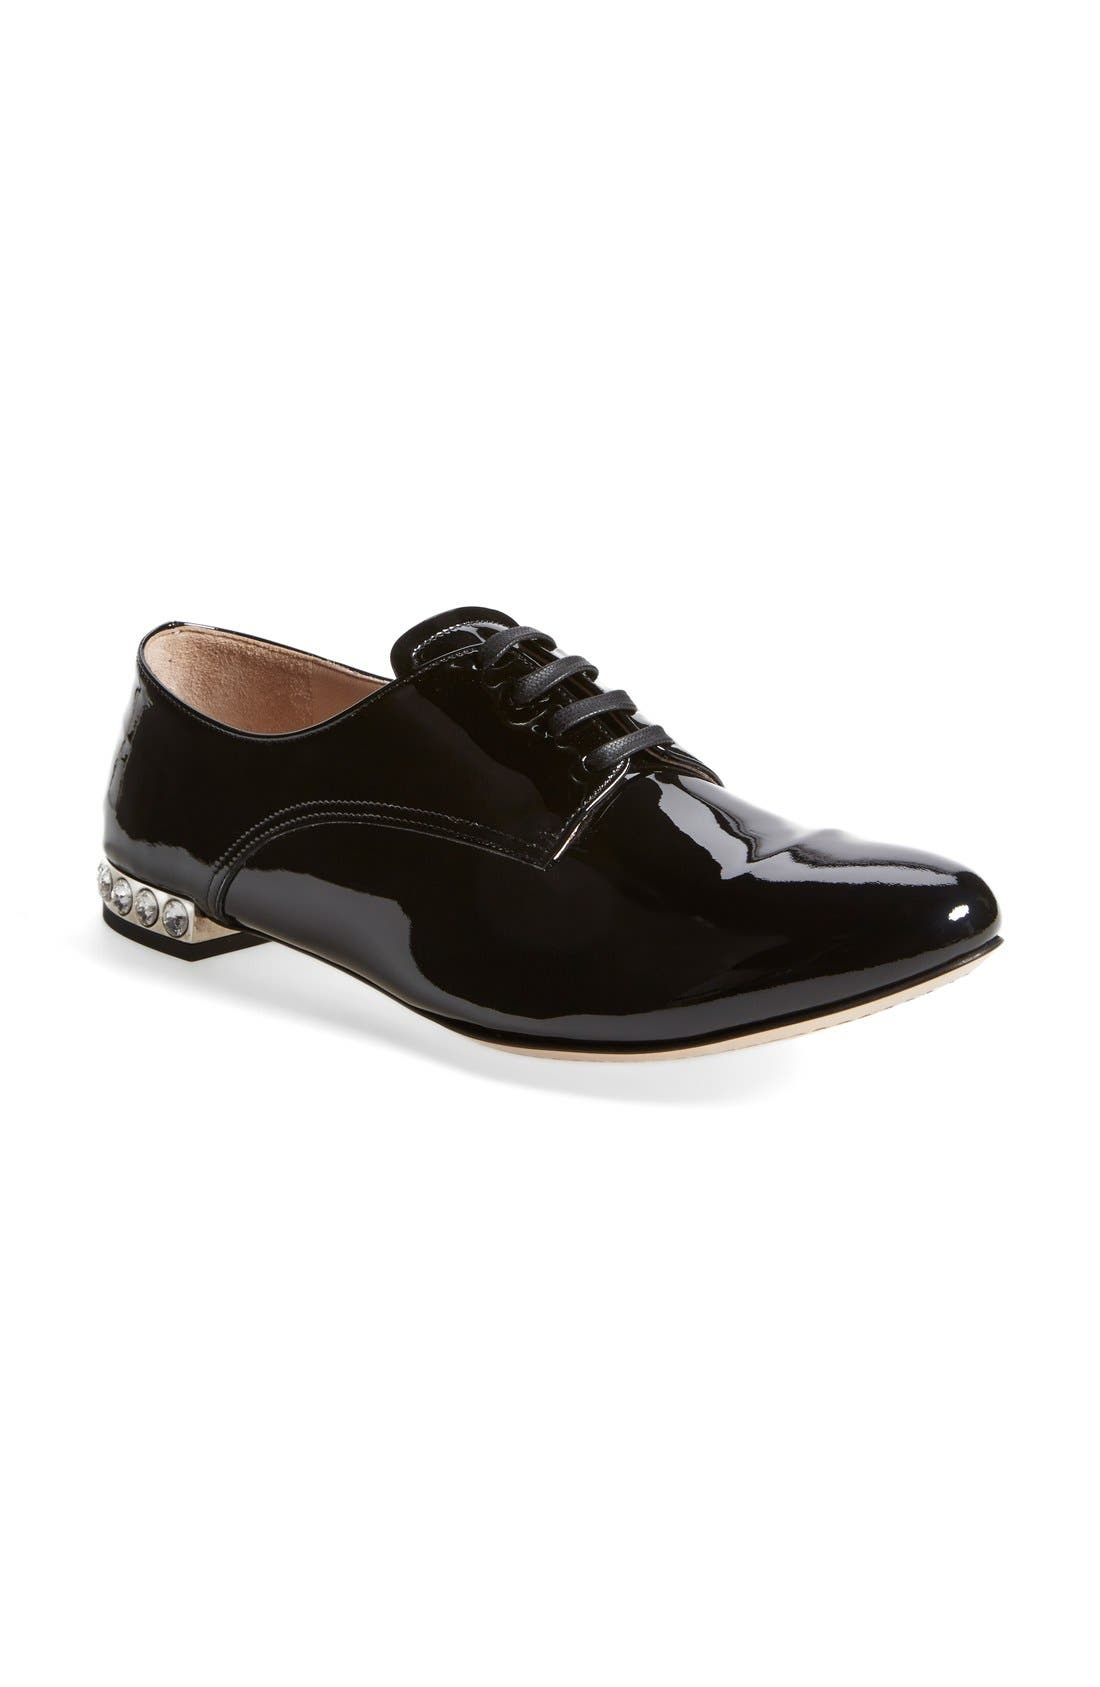 Alternate Image 1 Selected - Miu Miu Patent Crystal Oxford